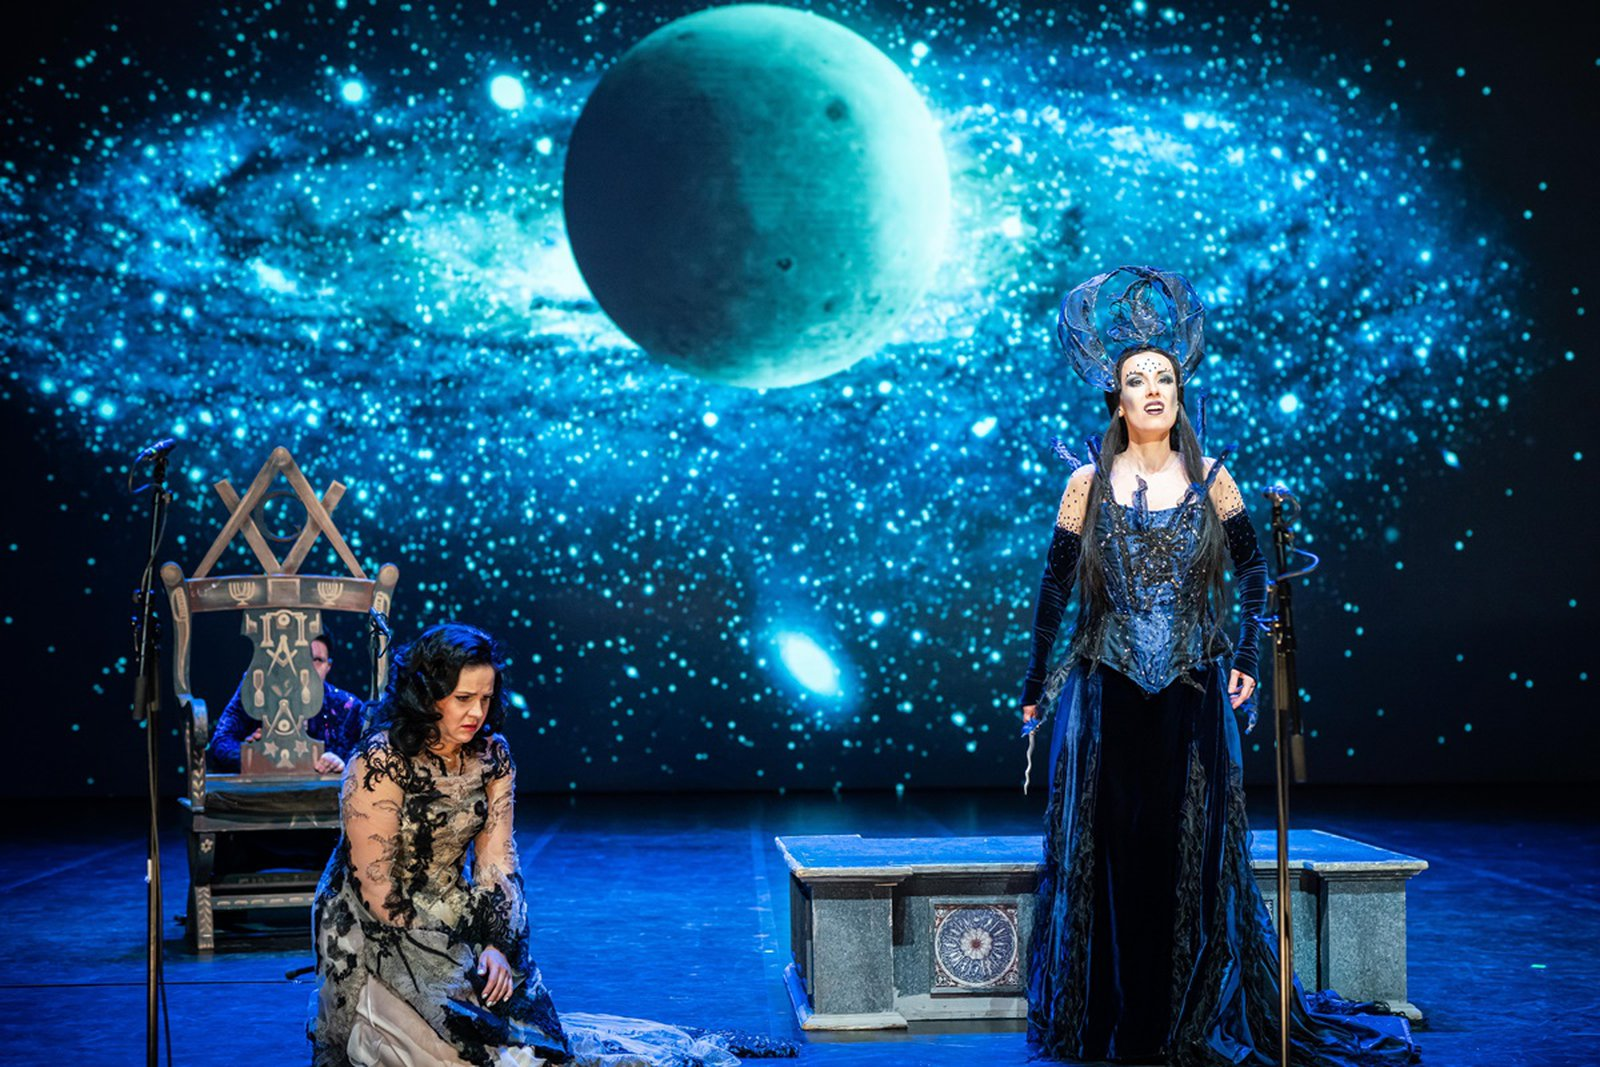 Mozart Die Zauberflöte – Highlights Streamed